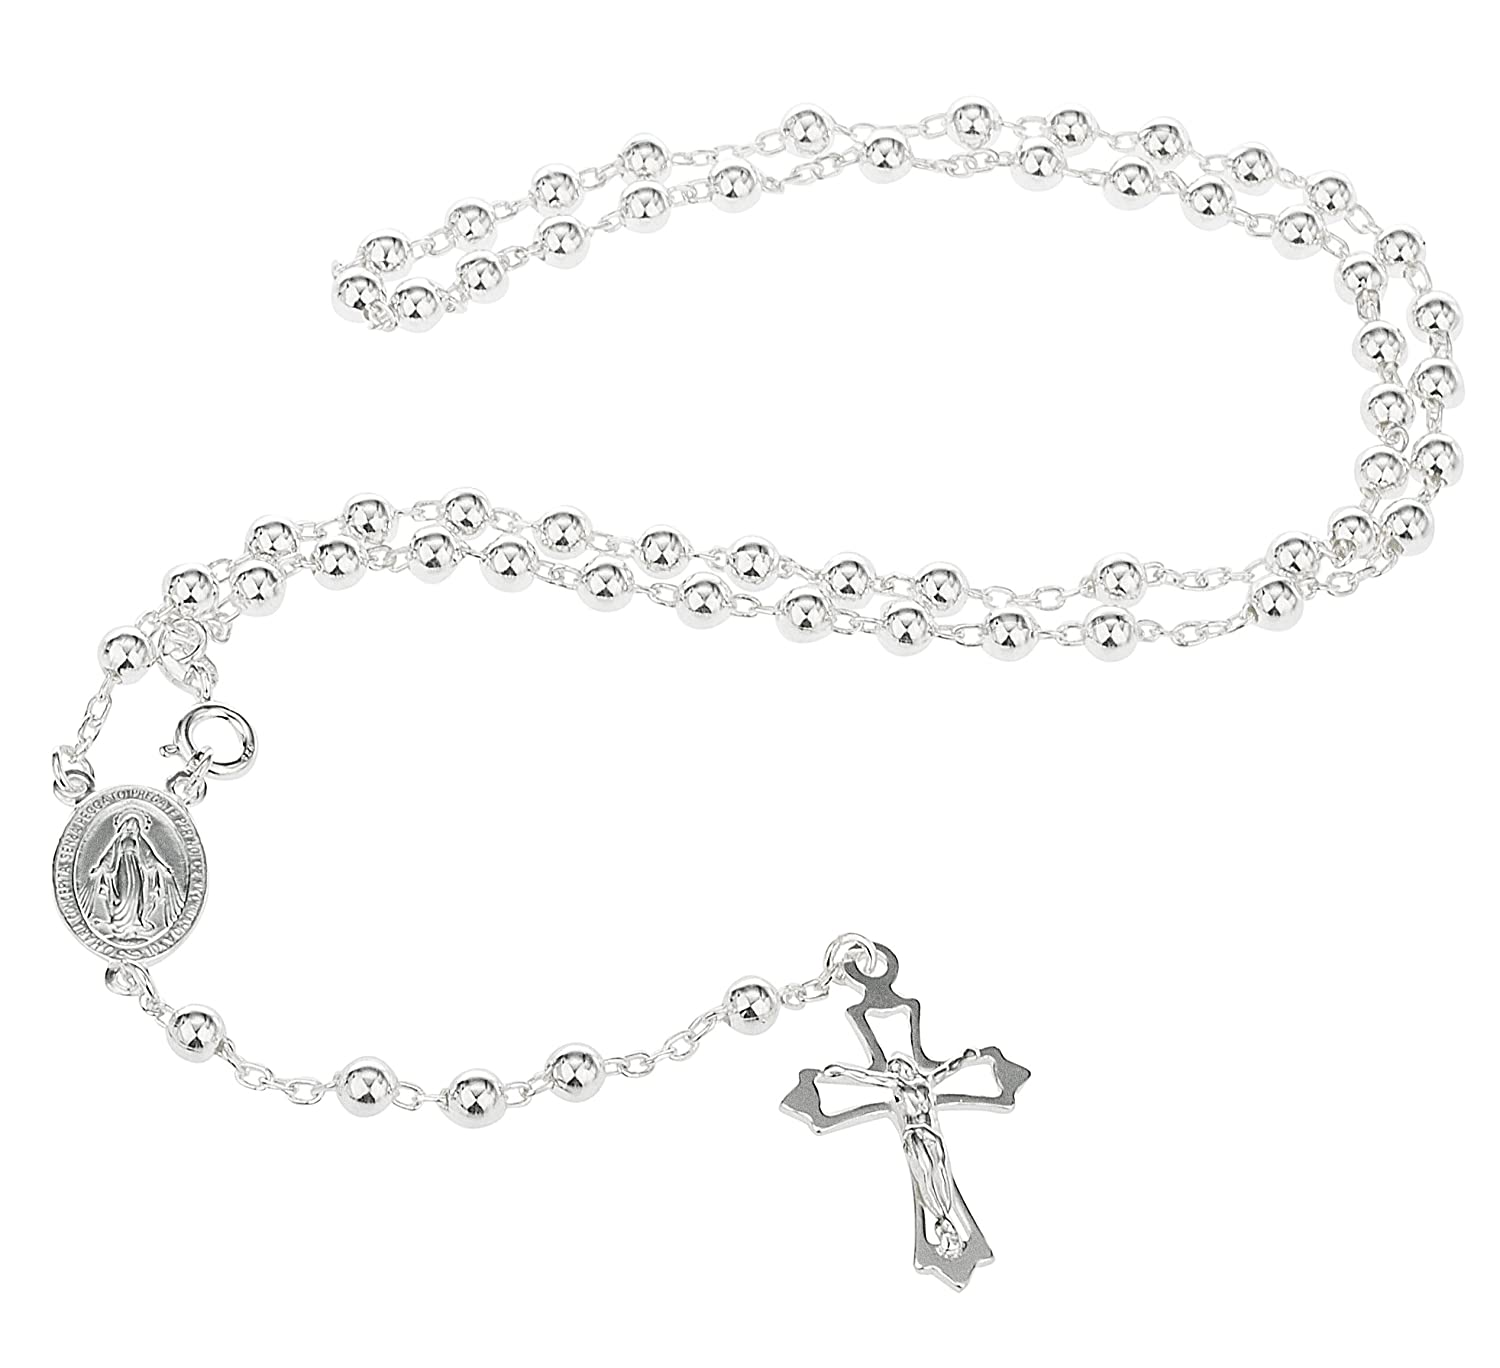 Sterling Silver 4mm 18 Inch Beaded Rosary Necklace with Dangling Cross I-1516